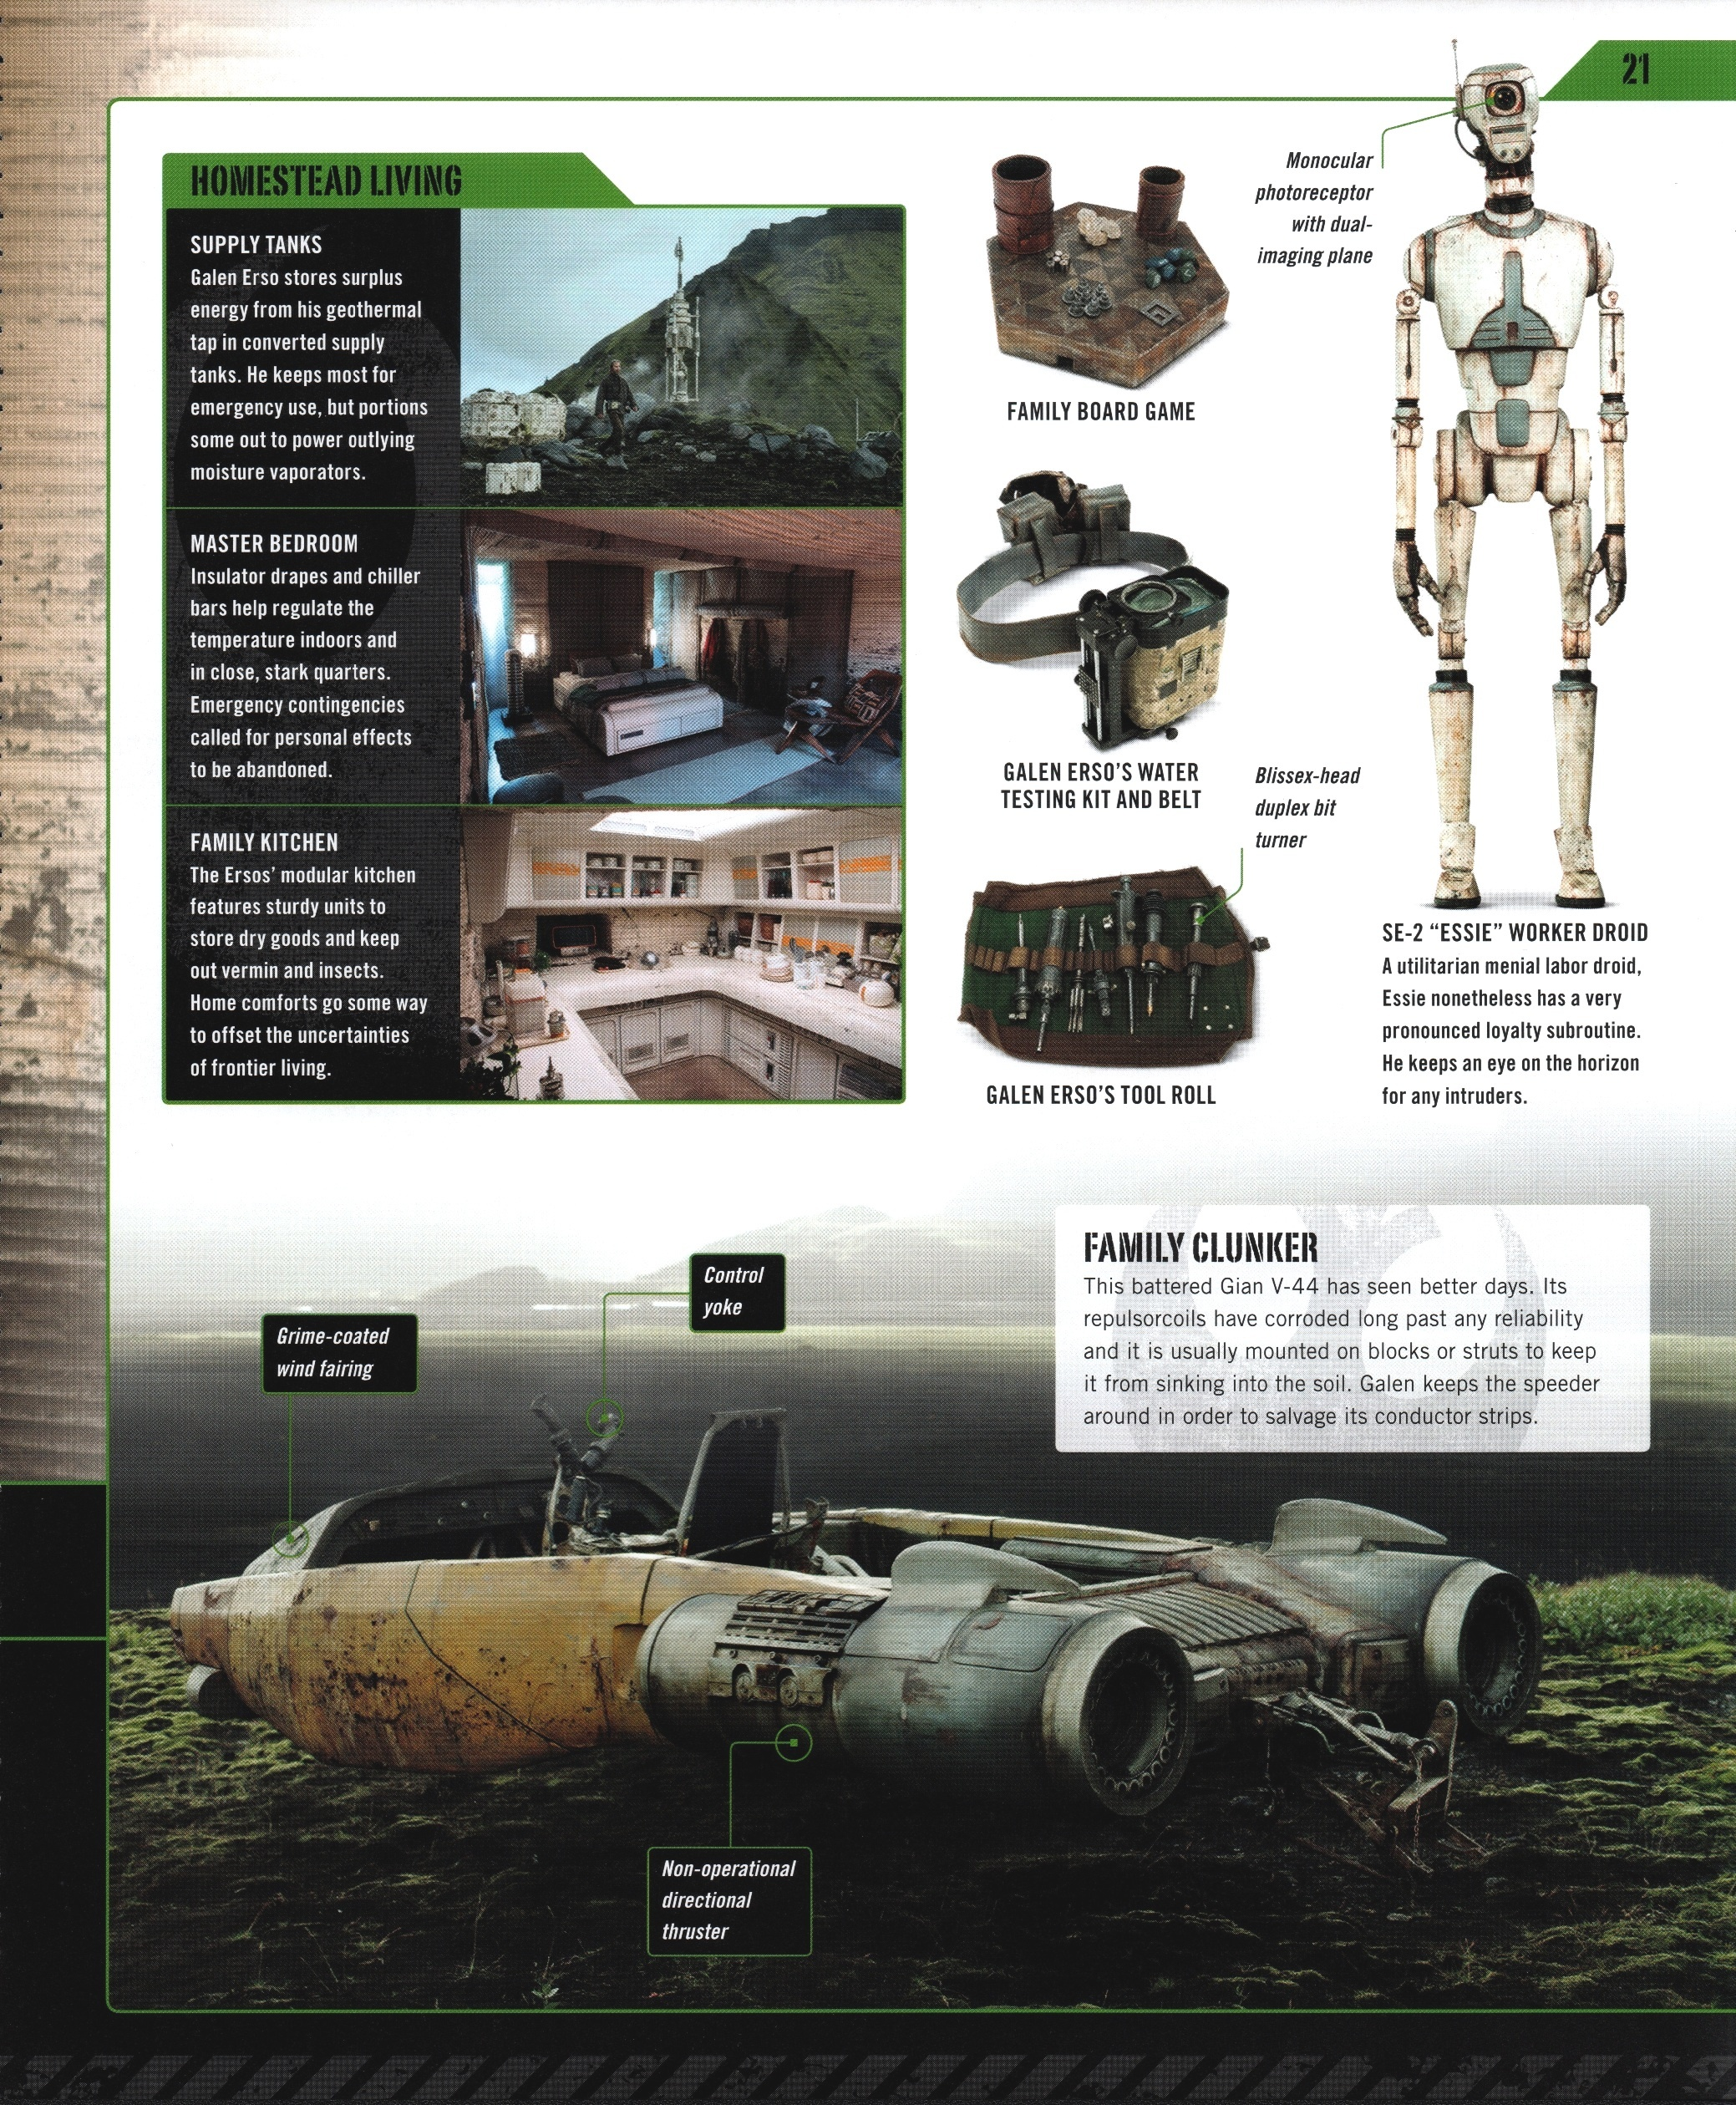 Rogue One Ultimate Visual Guide (b0bafett_Empire) p021